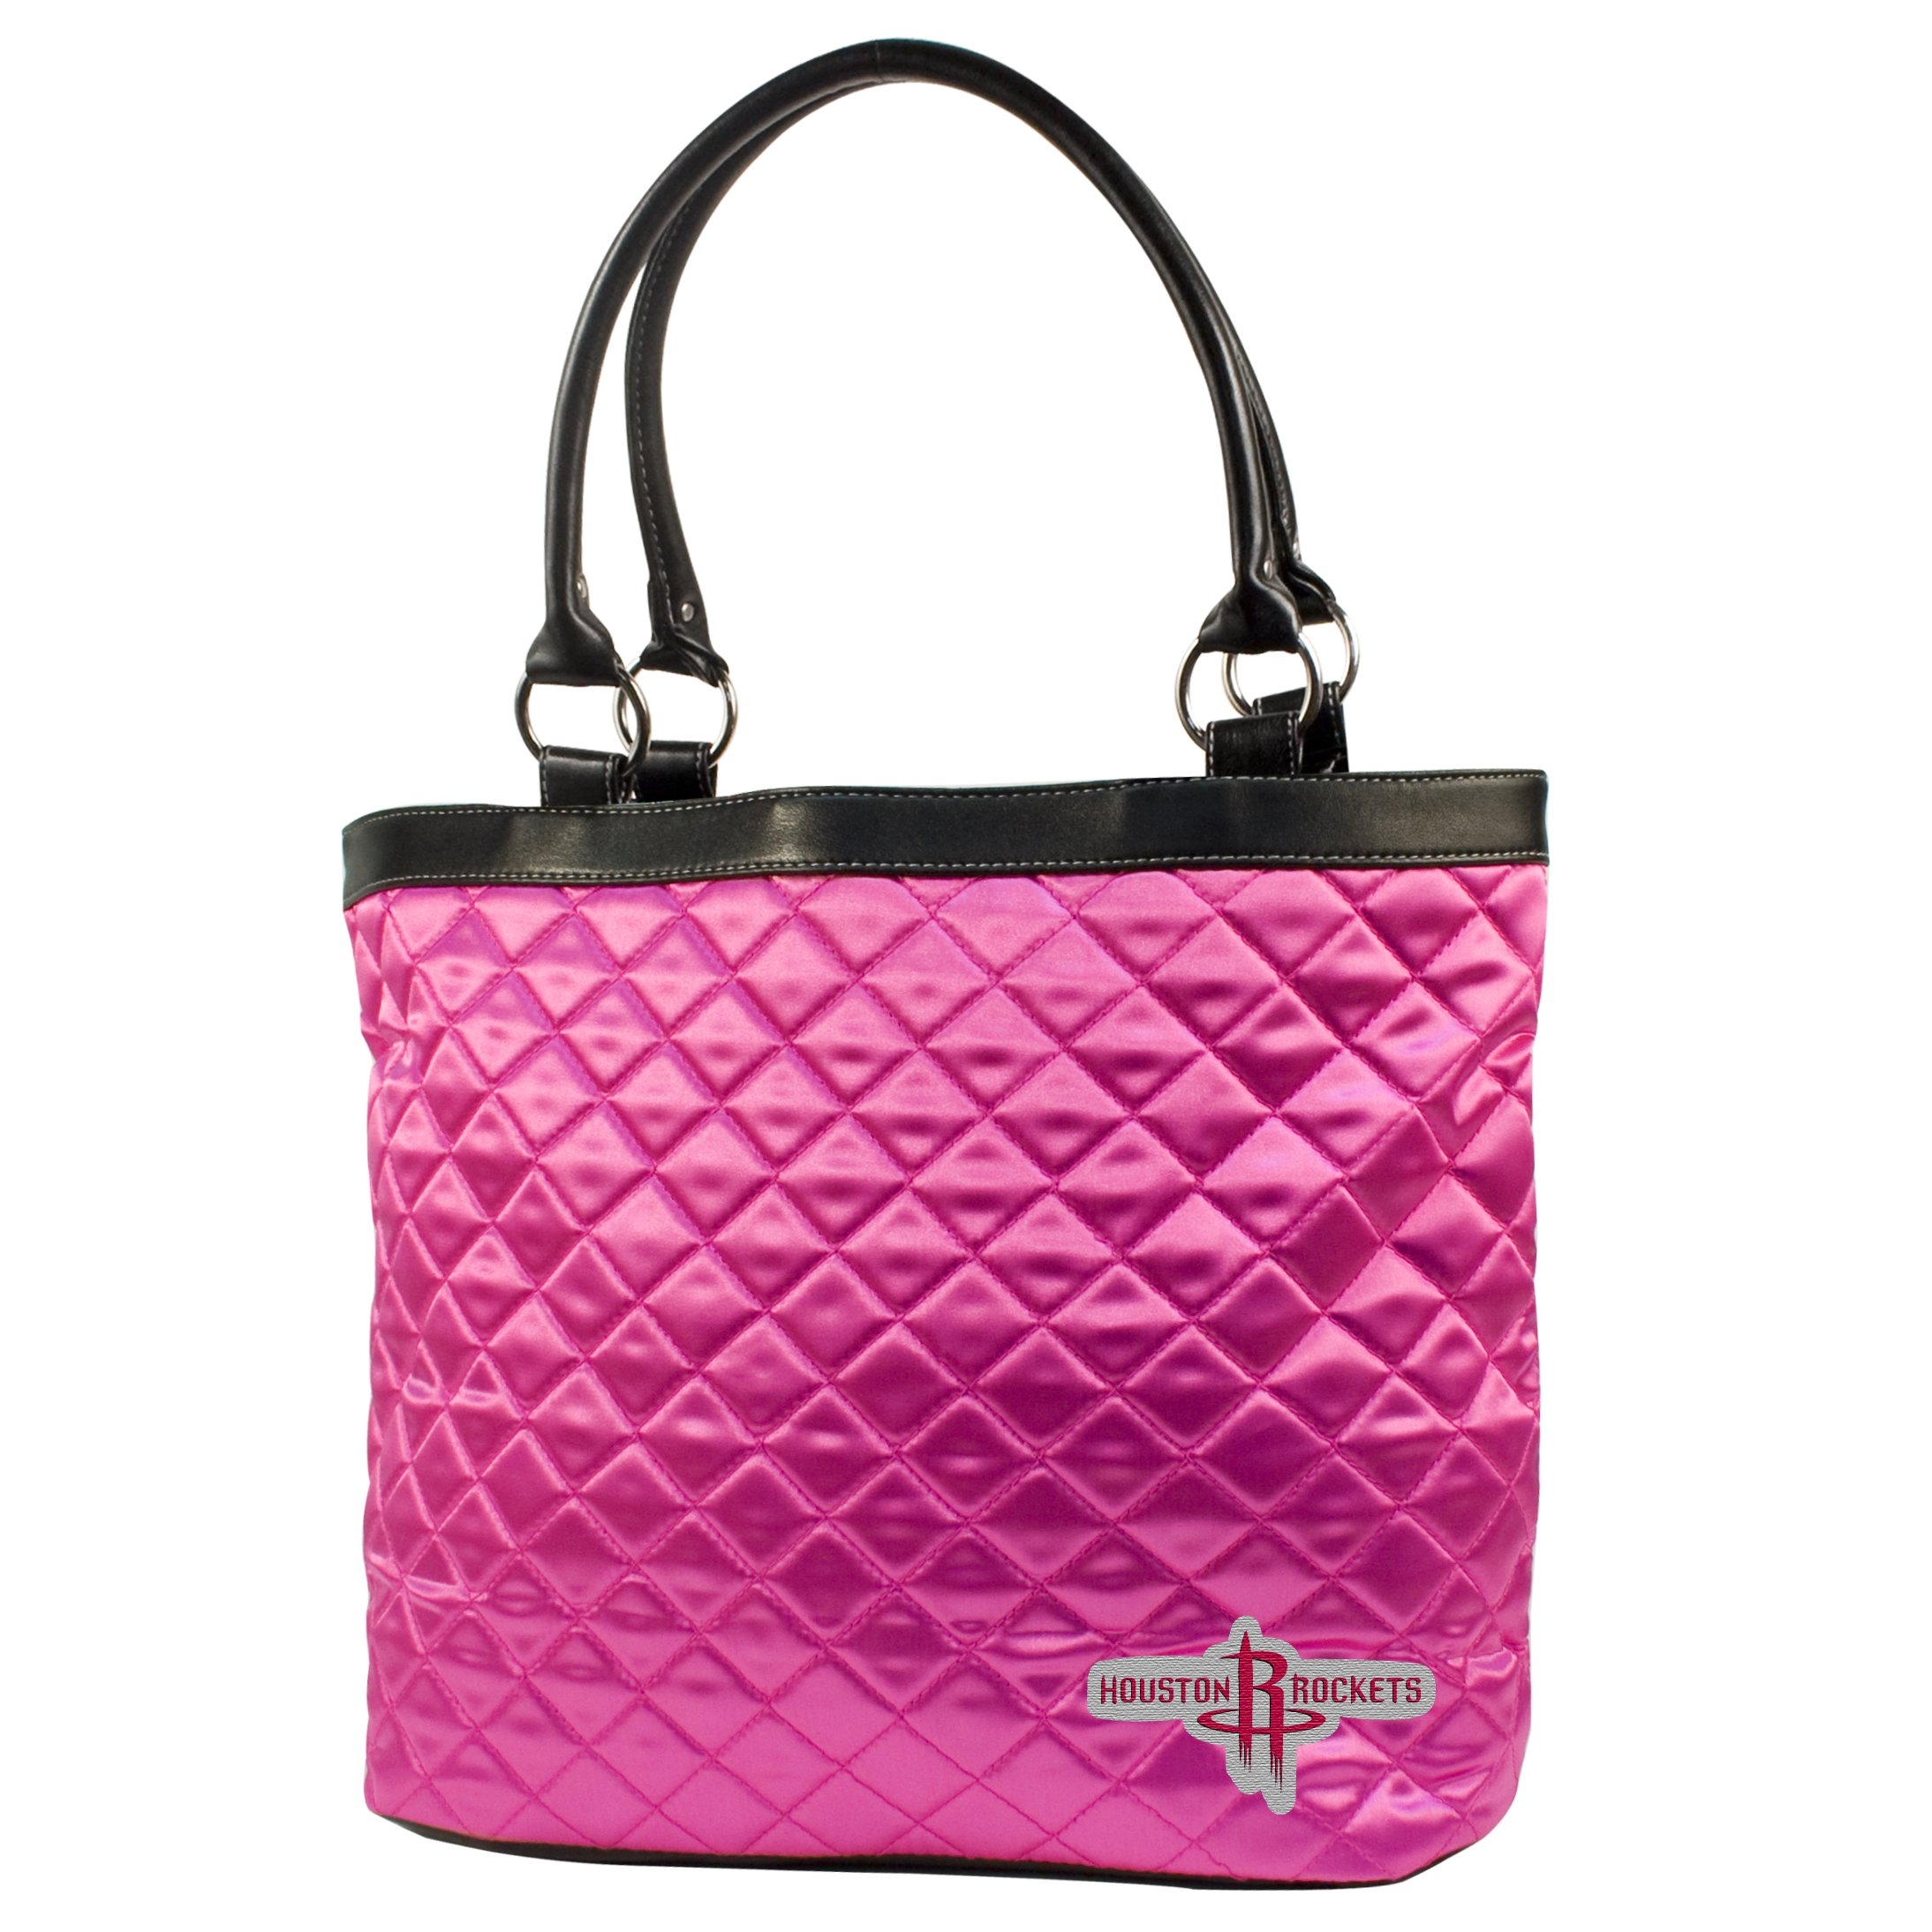 NBA Houston Rockets Quilted Tote